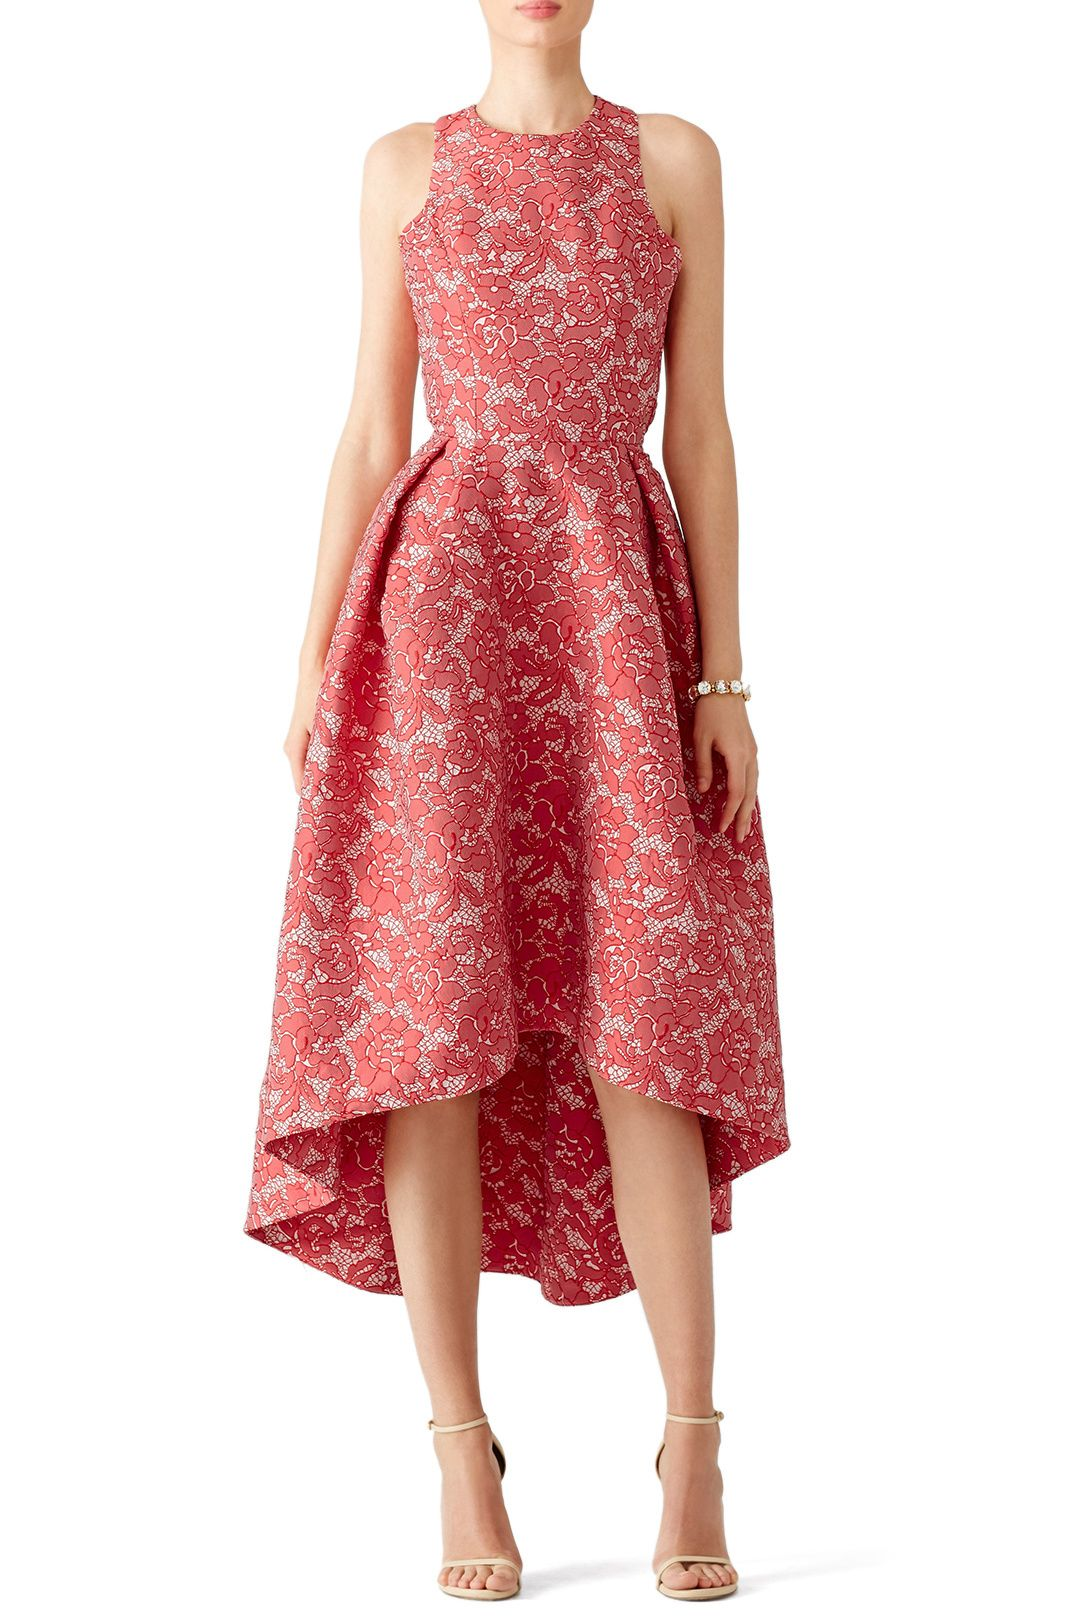 Monique Lhuillier Flower Dress